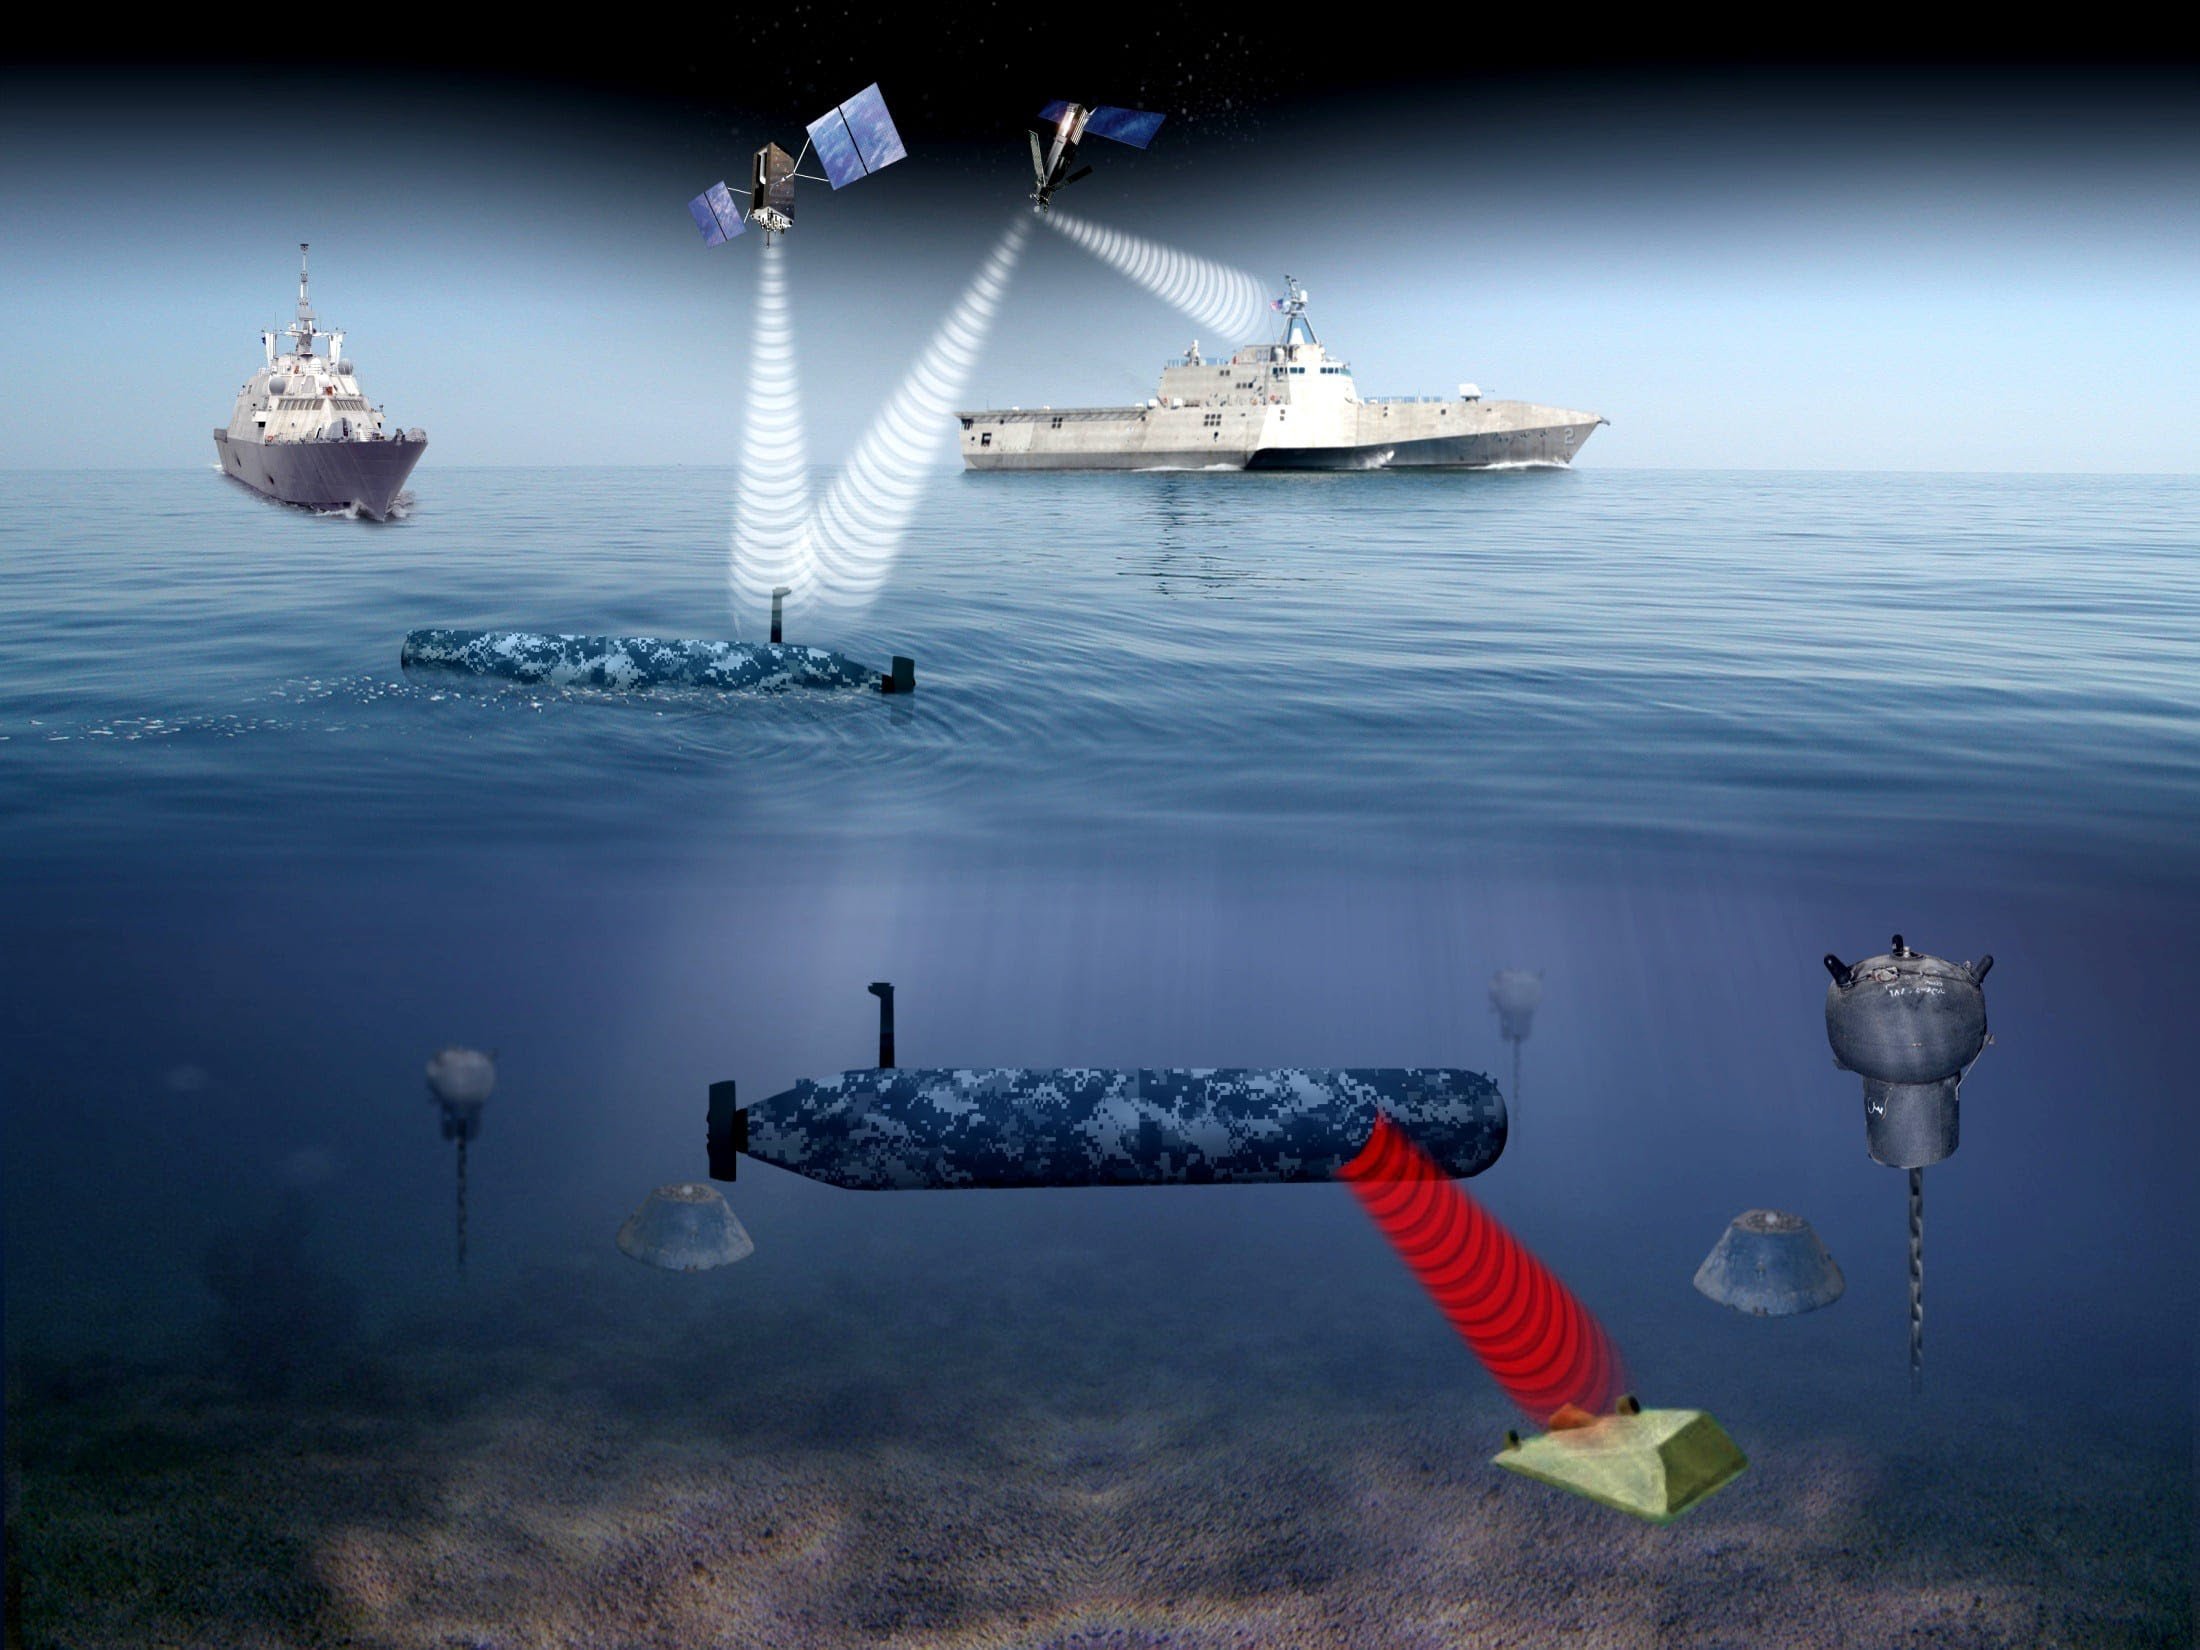 https://www.mistralsolutions.com/defense-solutions-page/solutions/sonar/